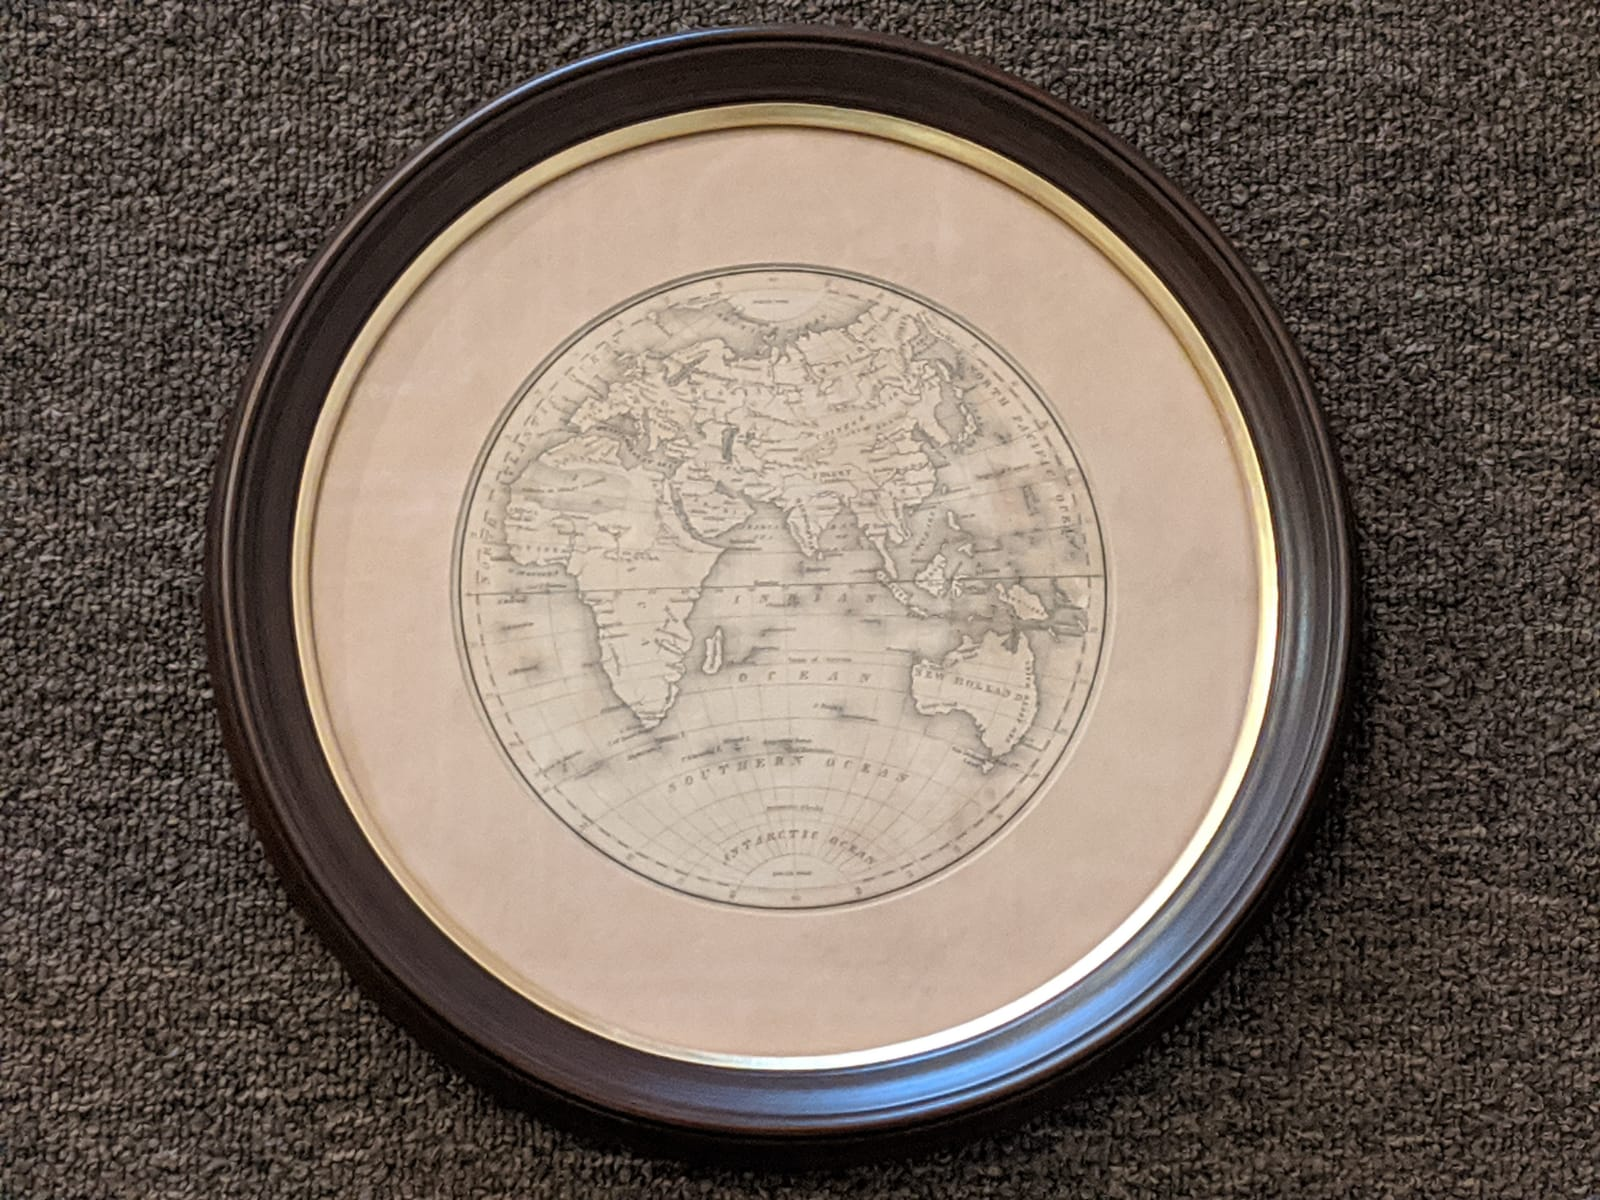 Globe photo by The Framemakers